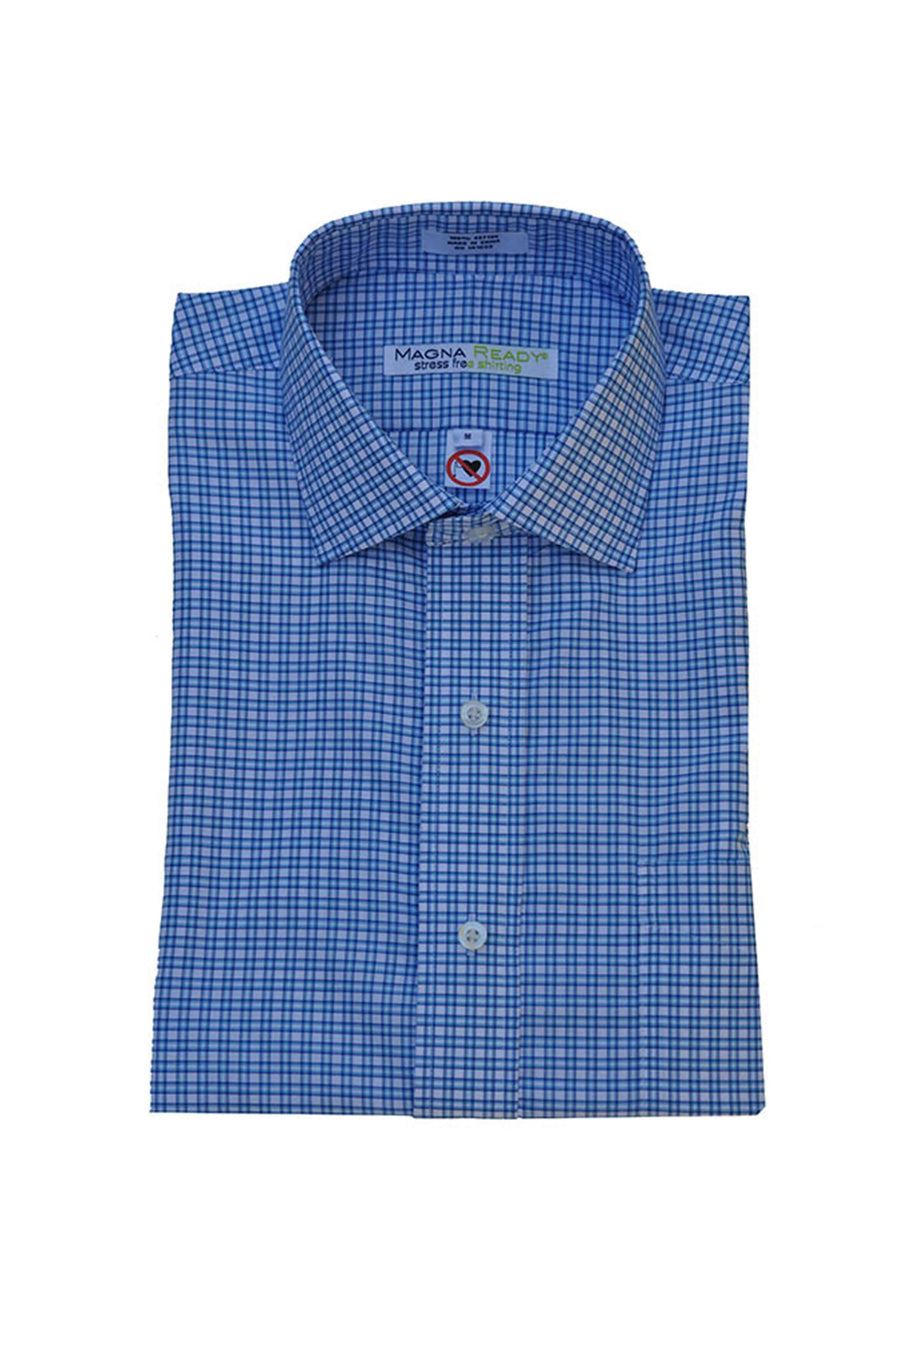 White and Carolina Blue Classic Long Sleeve Shirt with Magnetic Closures